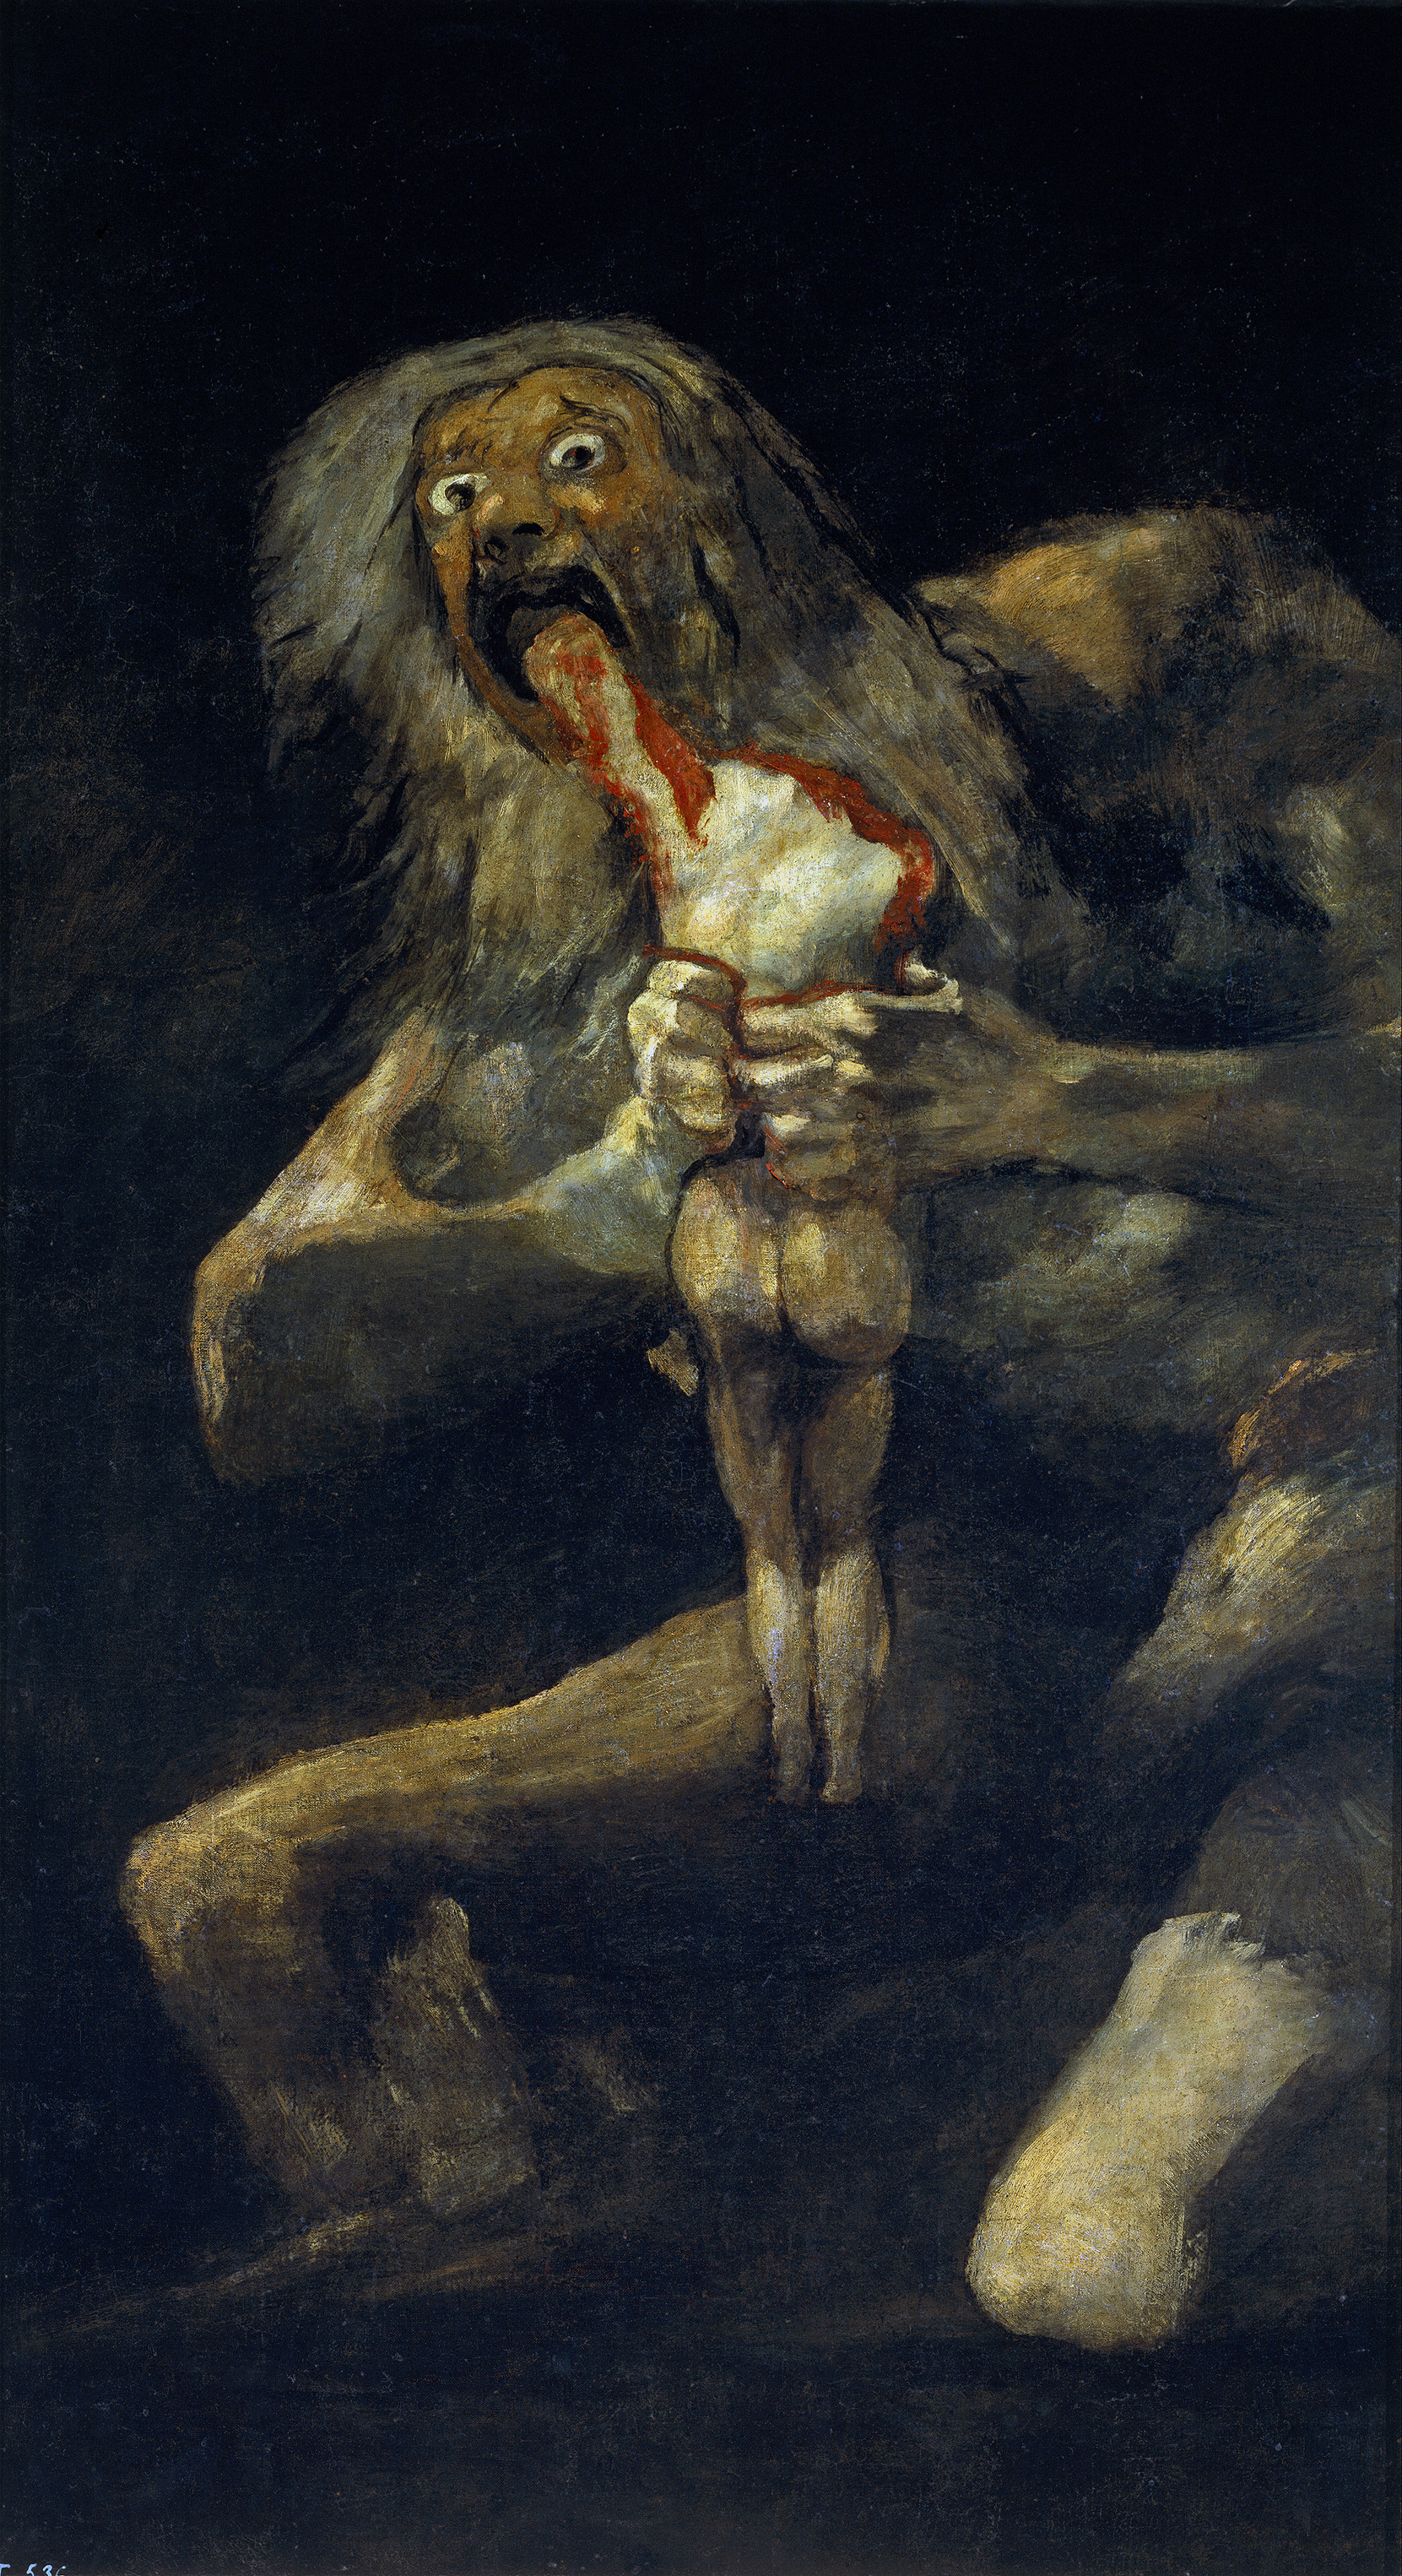 Francisco Goya, Saturn Devouring his Son